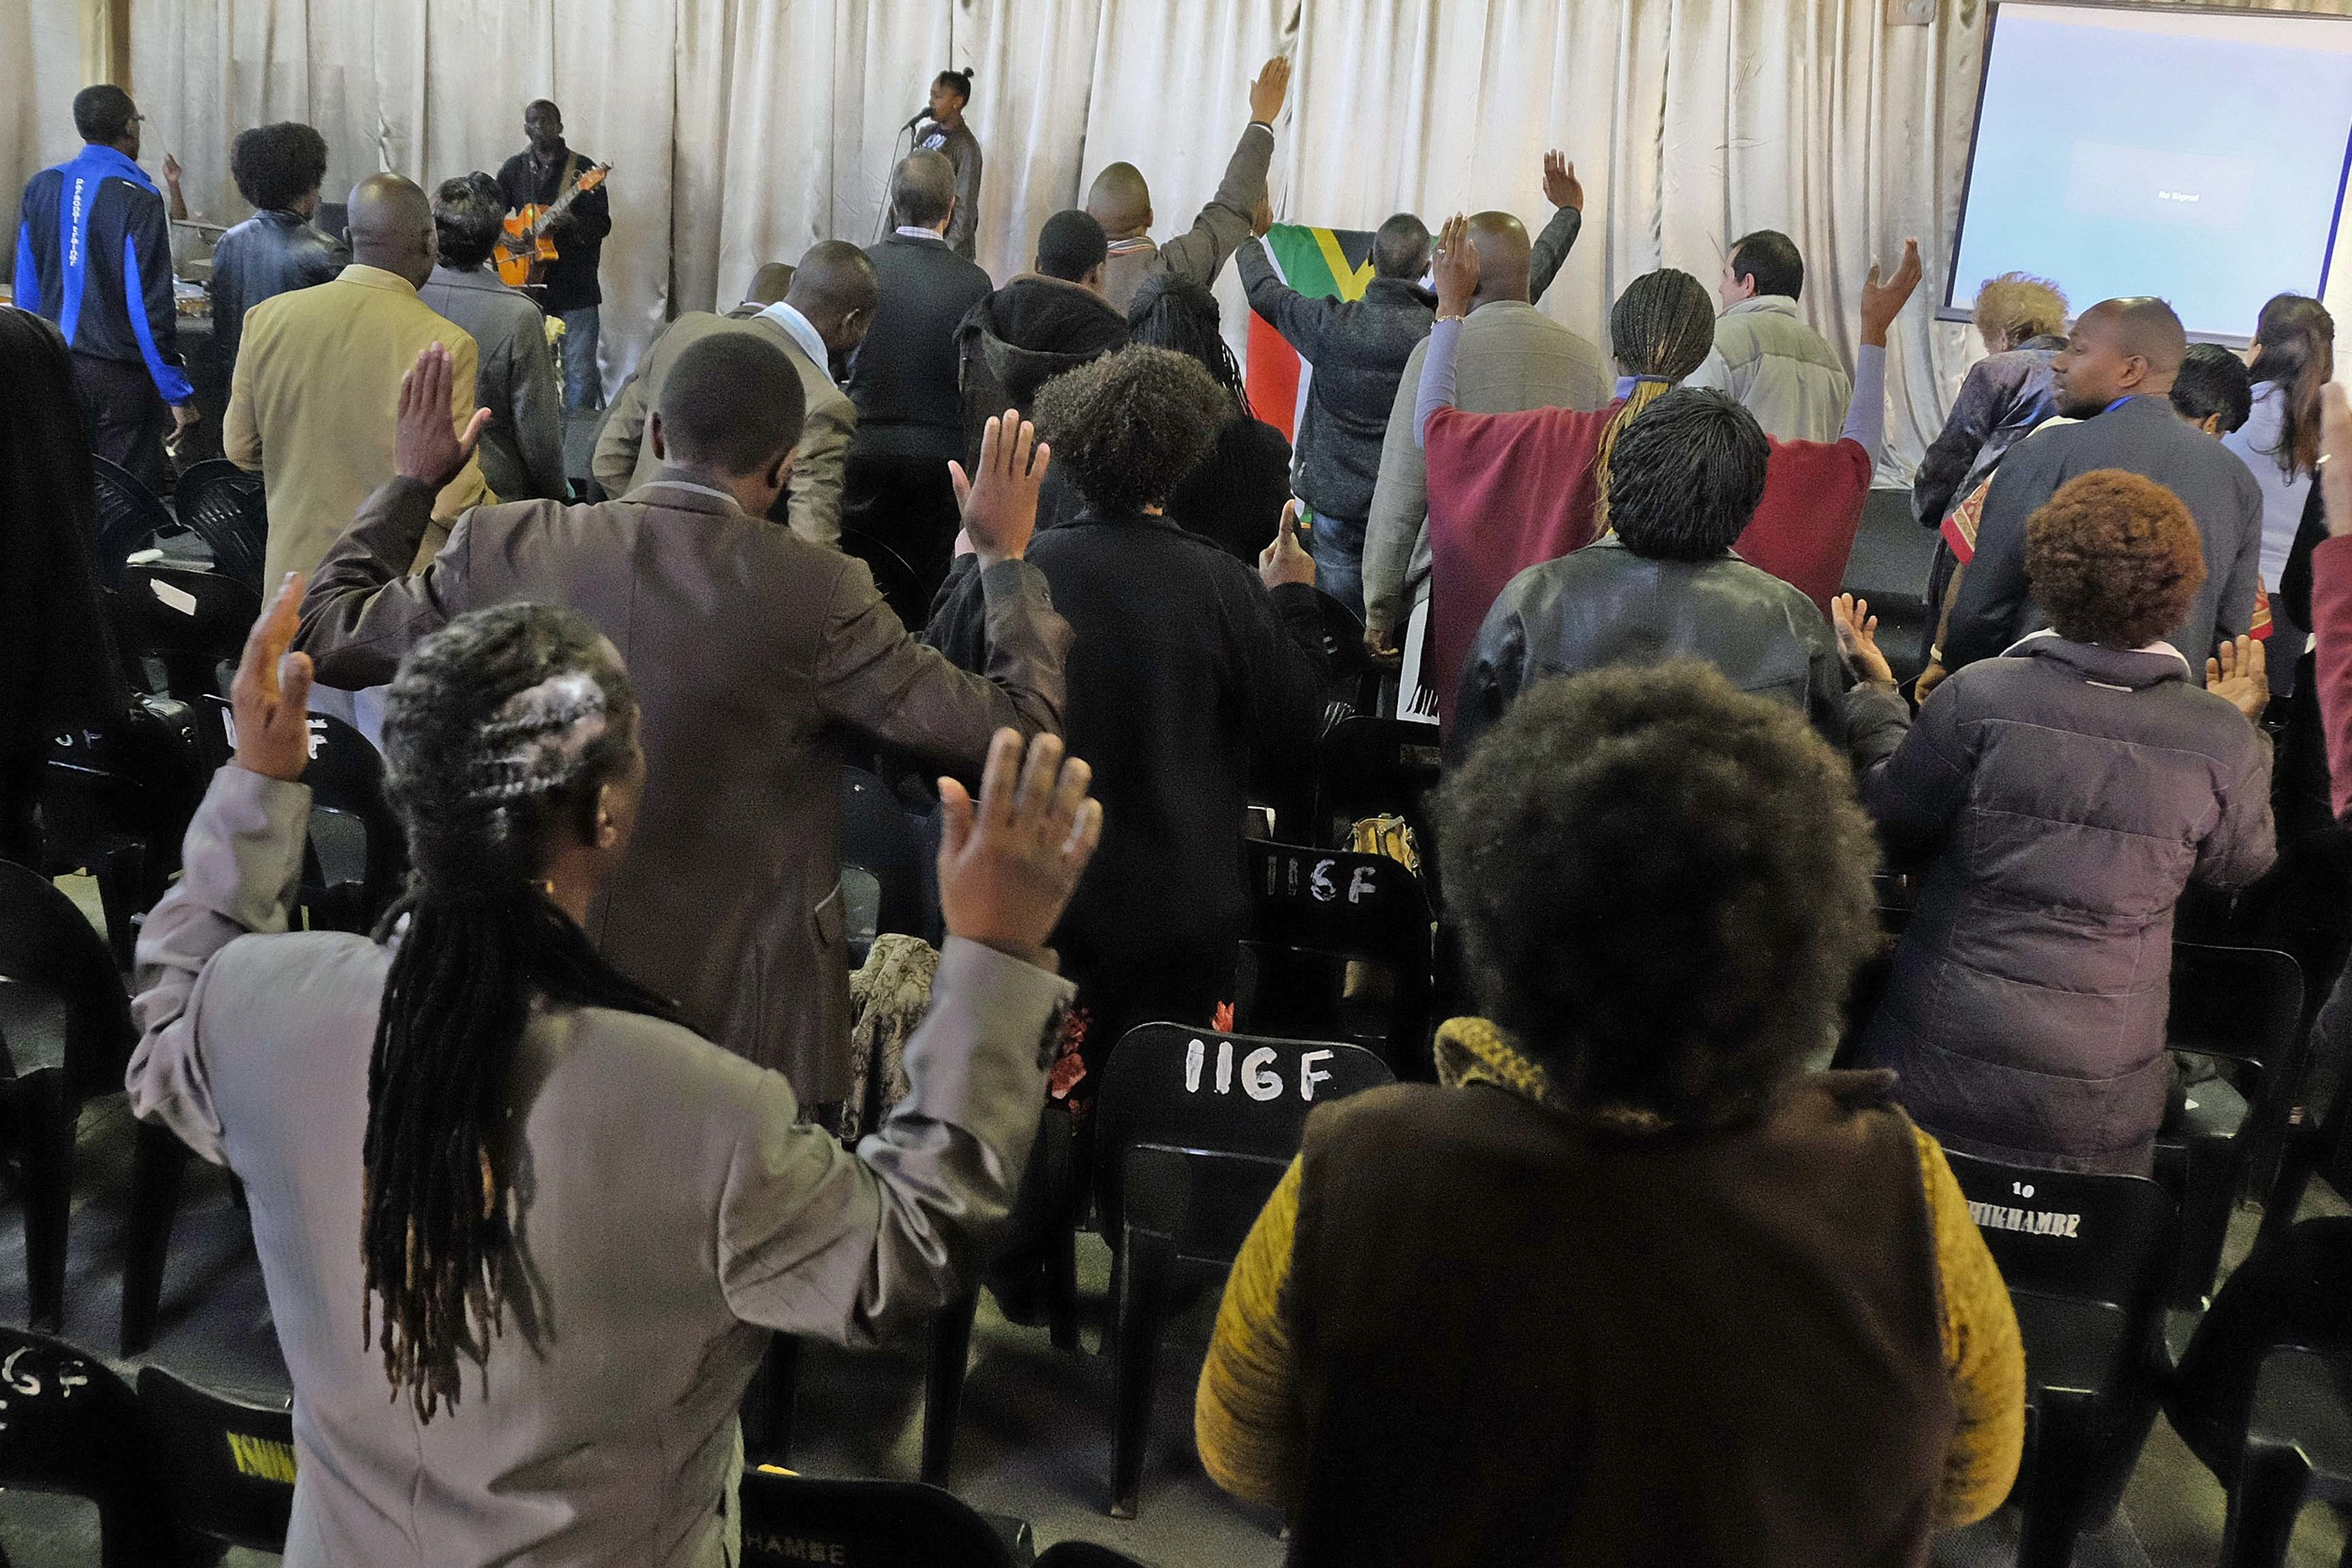 Praise and worship at The Rise!